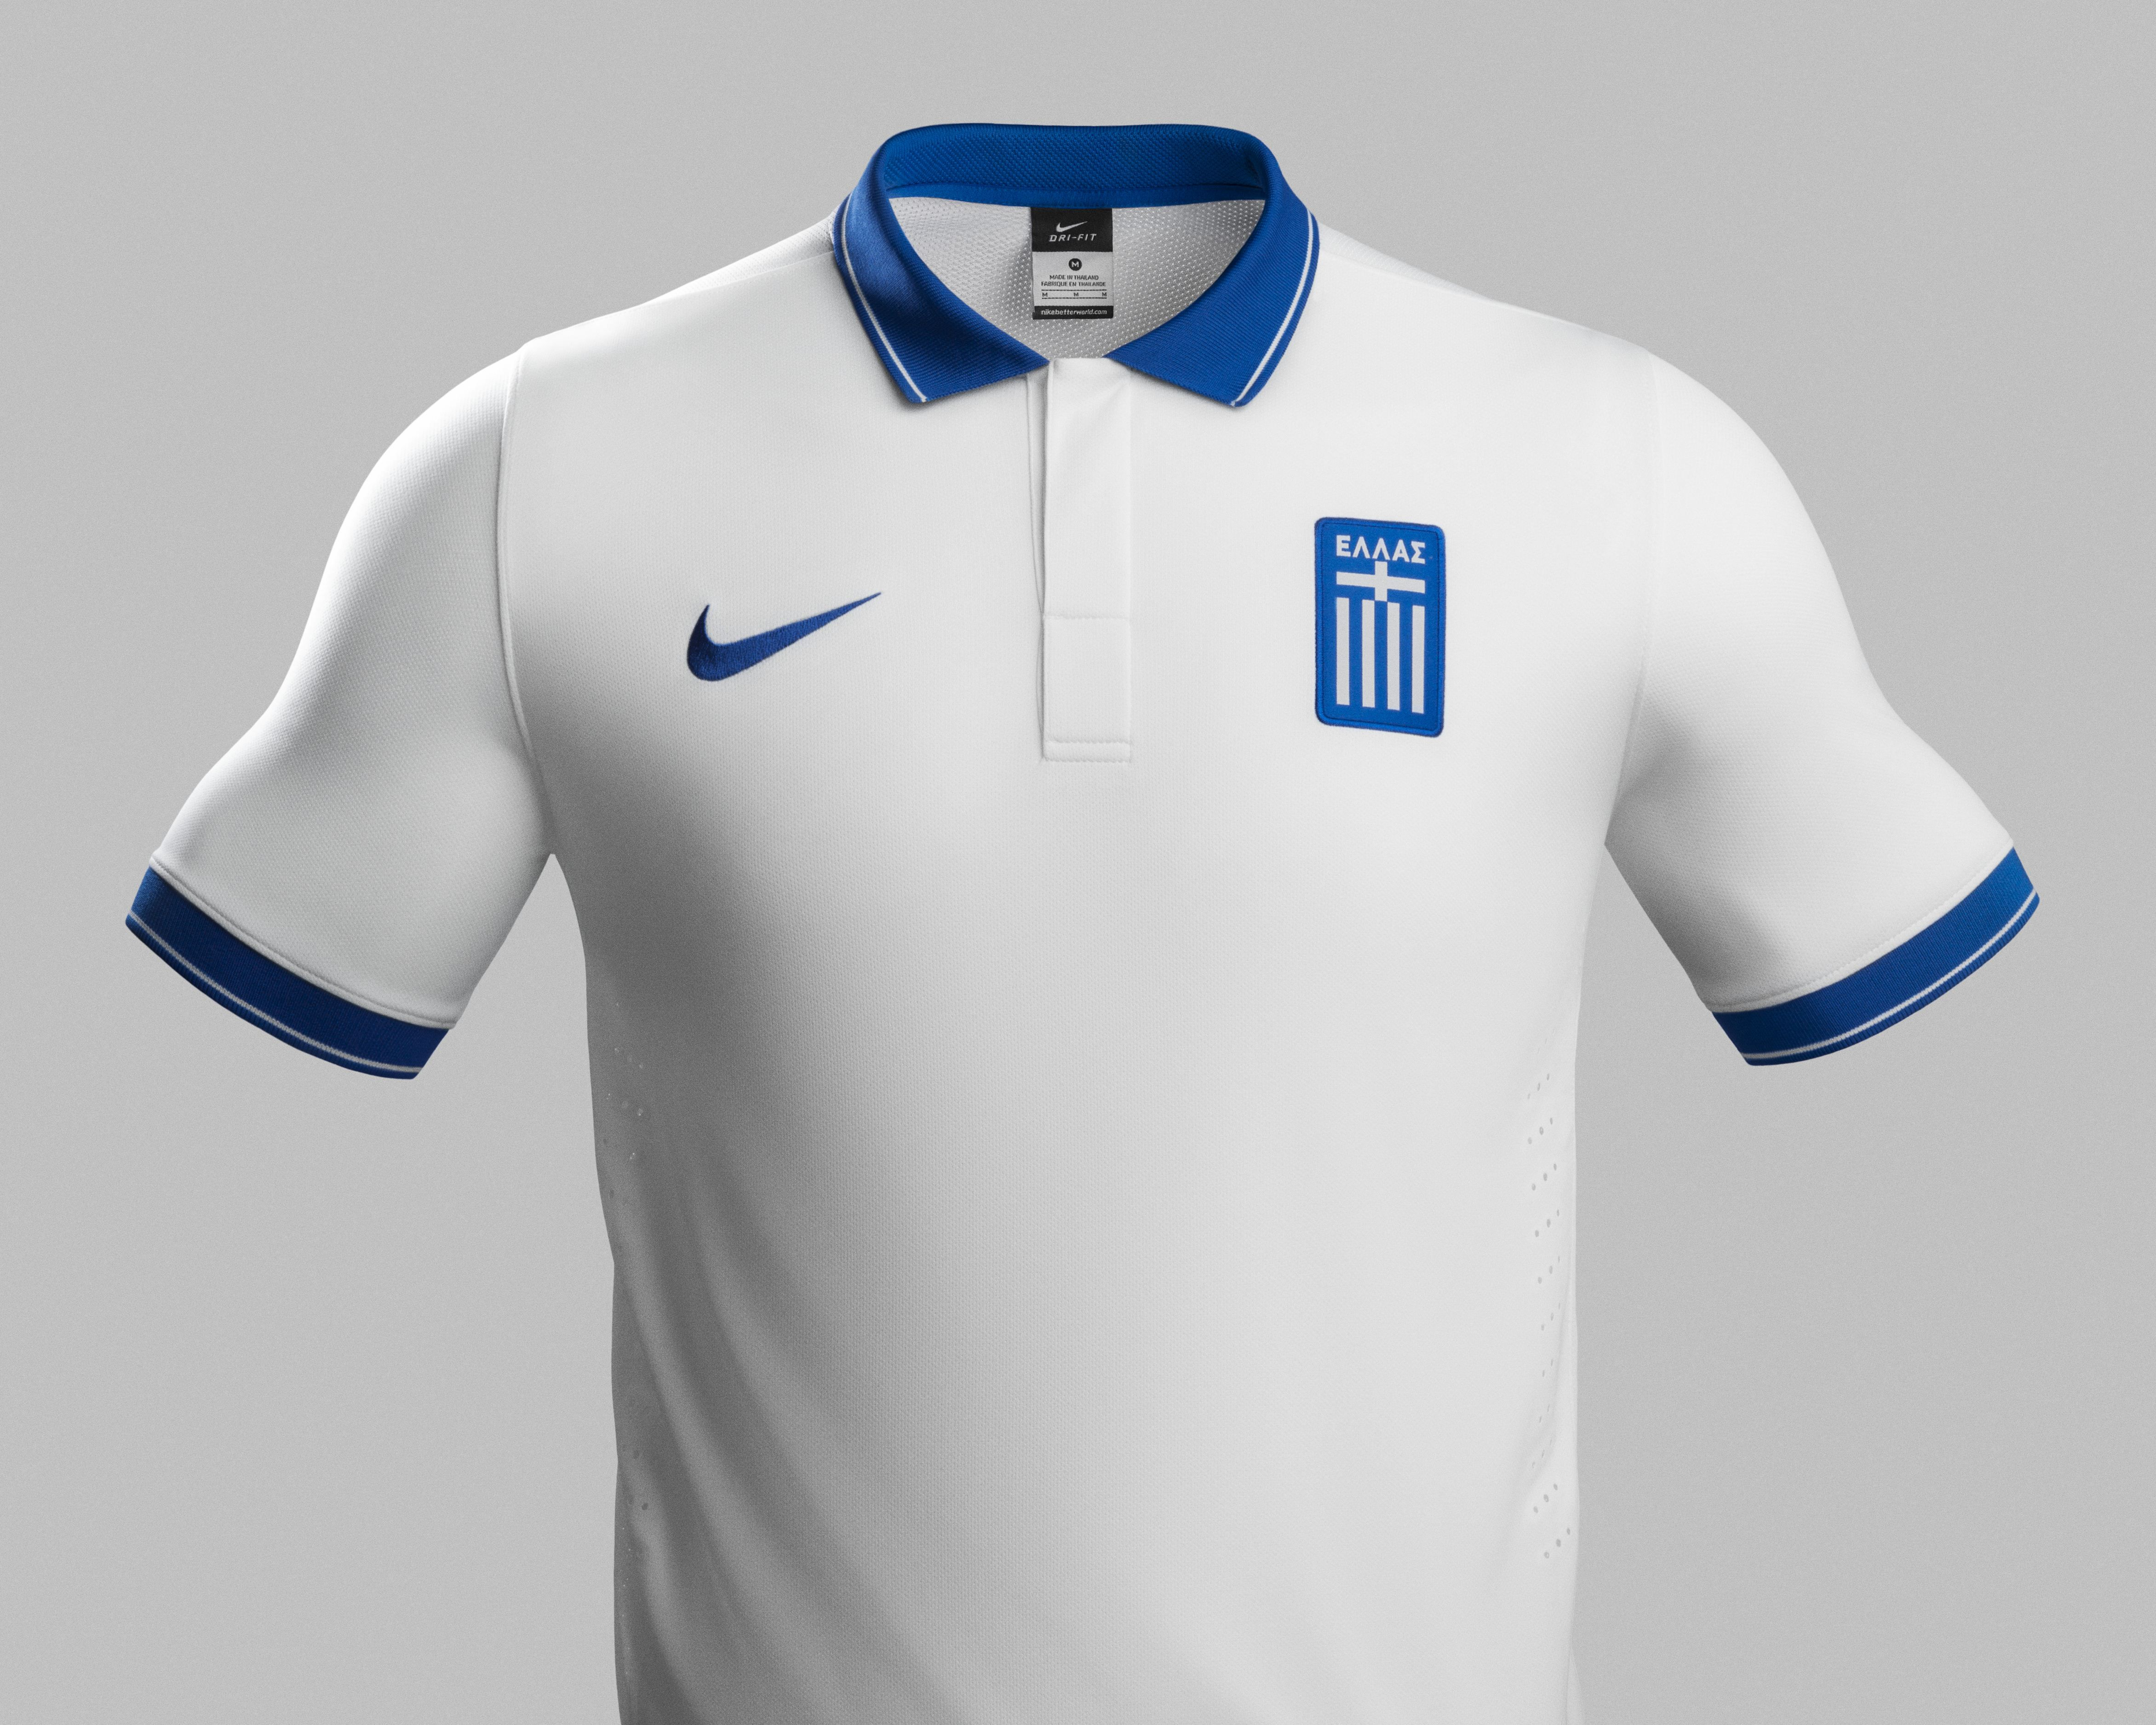 Greece Home Kit for World Cup 2014  worldcup  brazil2014  greece  soccer   football  GRE 843462922f0ef